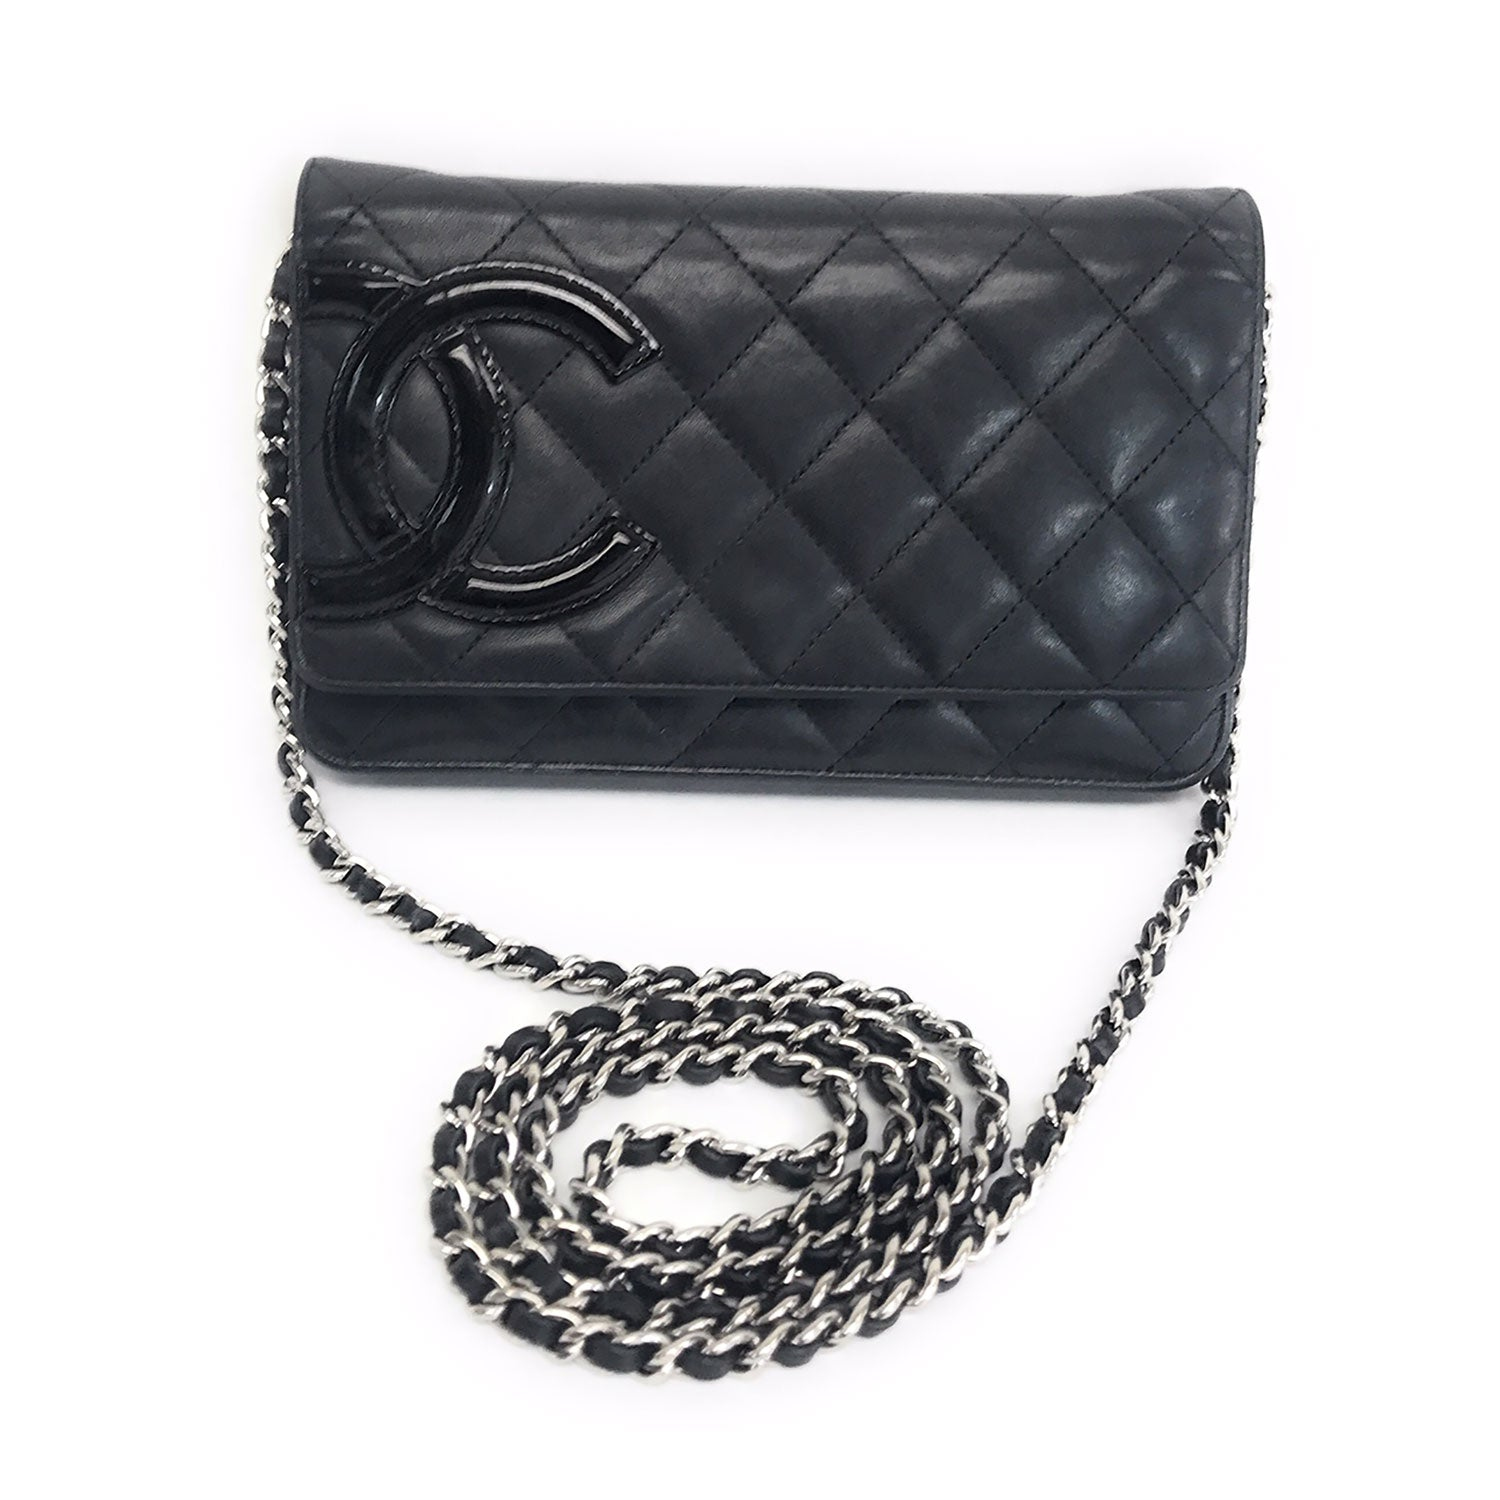 04a0ab36d0 Chanel Wallet on Chain Cambon Quilted Ligne Black Lambskin Leather Bag